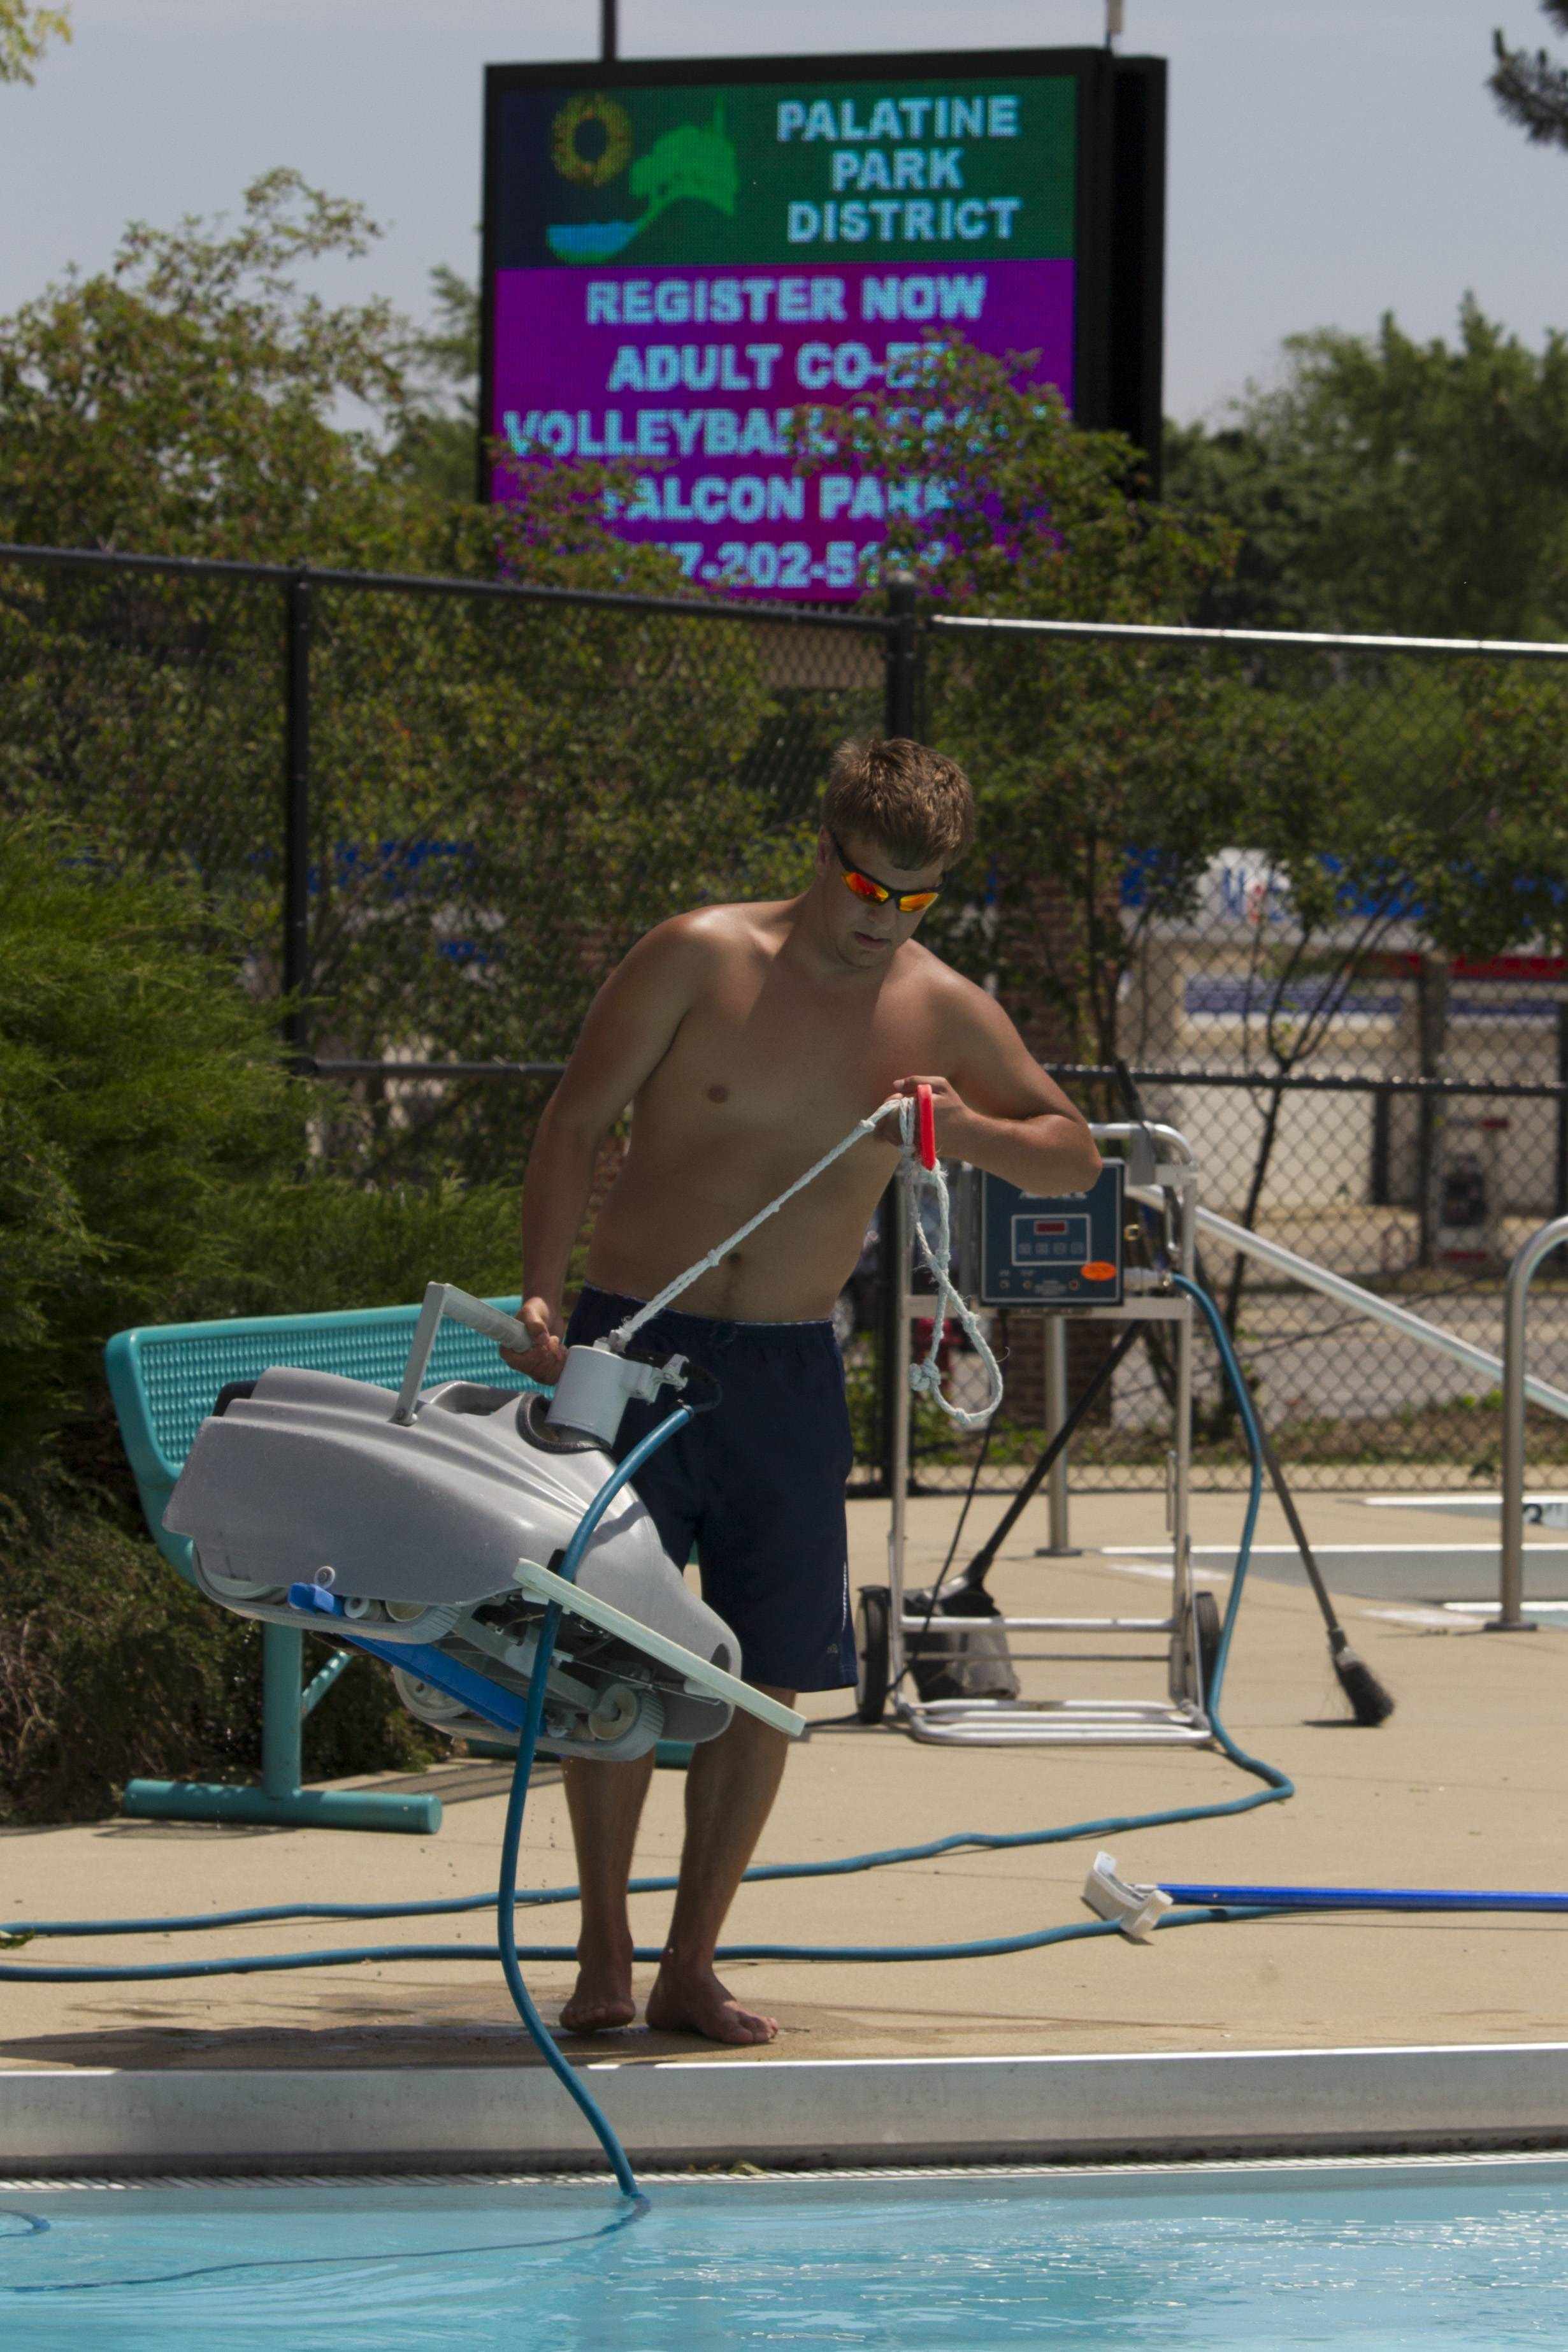 Todd Fauria puts a pool vacuum in the Palatine Family Aquatic Center pool in preparation for its opening at 11 a.m. today.